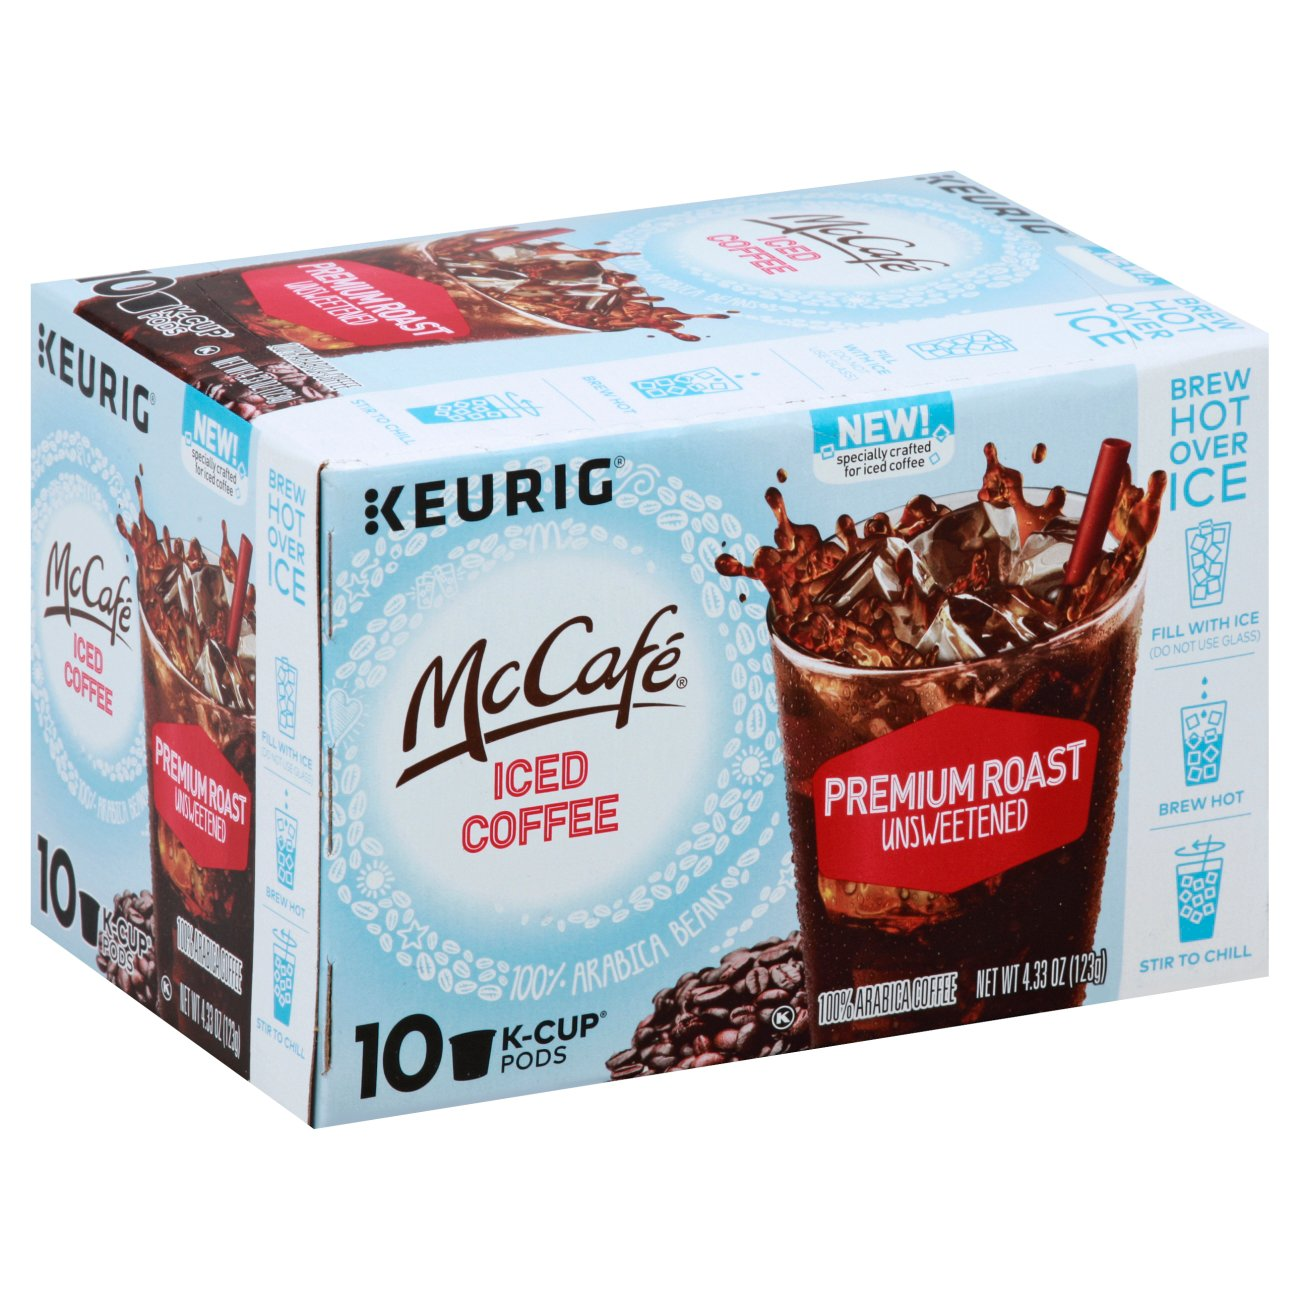 Mccafe Keurig Ice Coffee Premium Roast